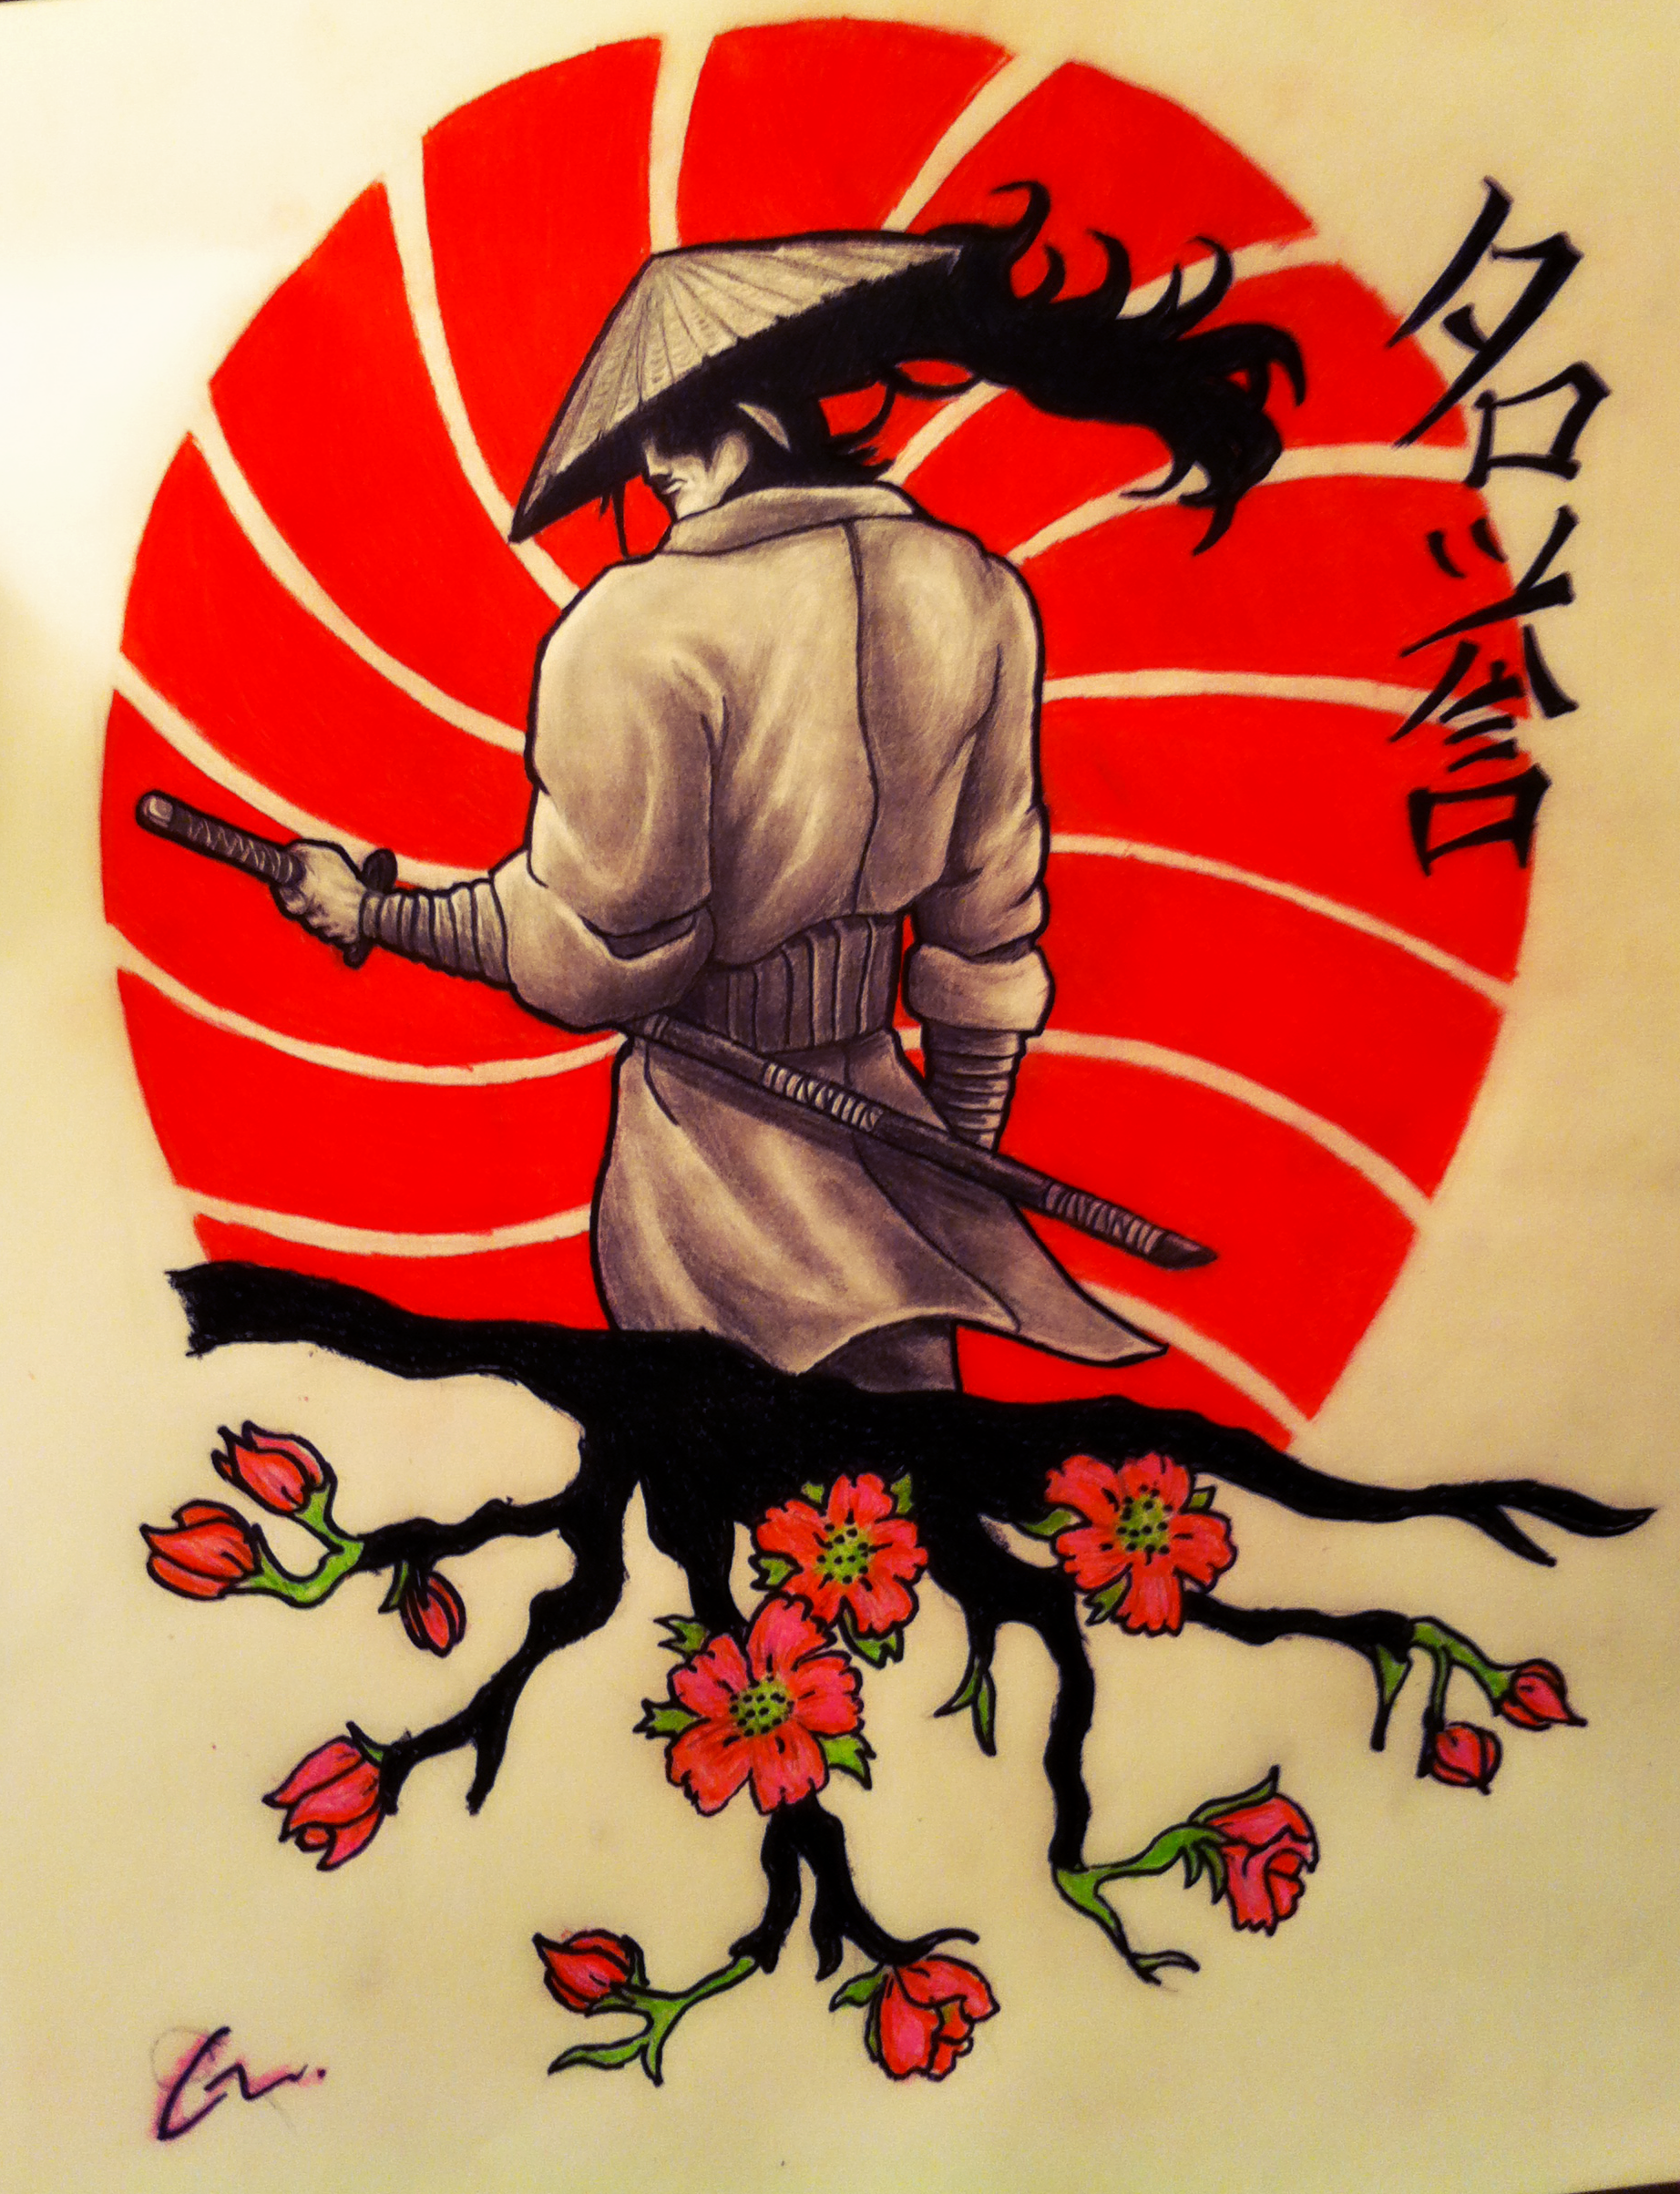 Samurai Tattoo Design By MrMattFl On DeviantArt